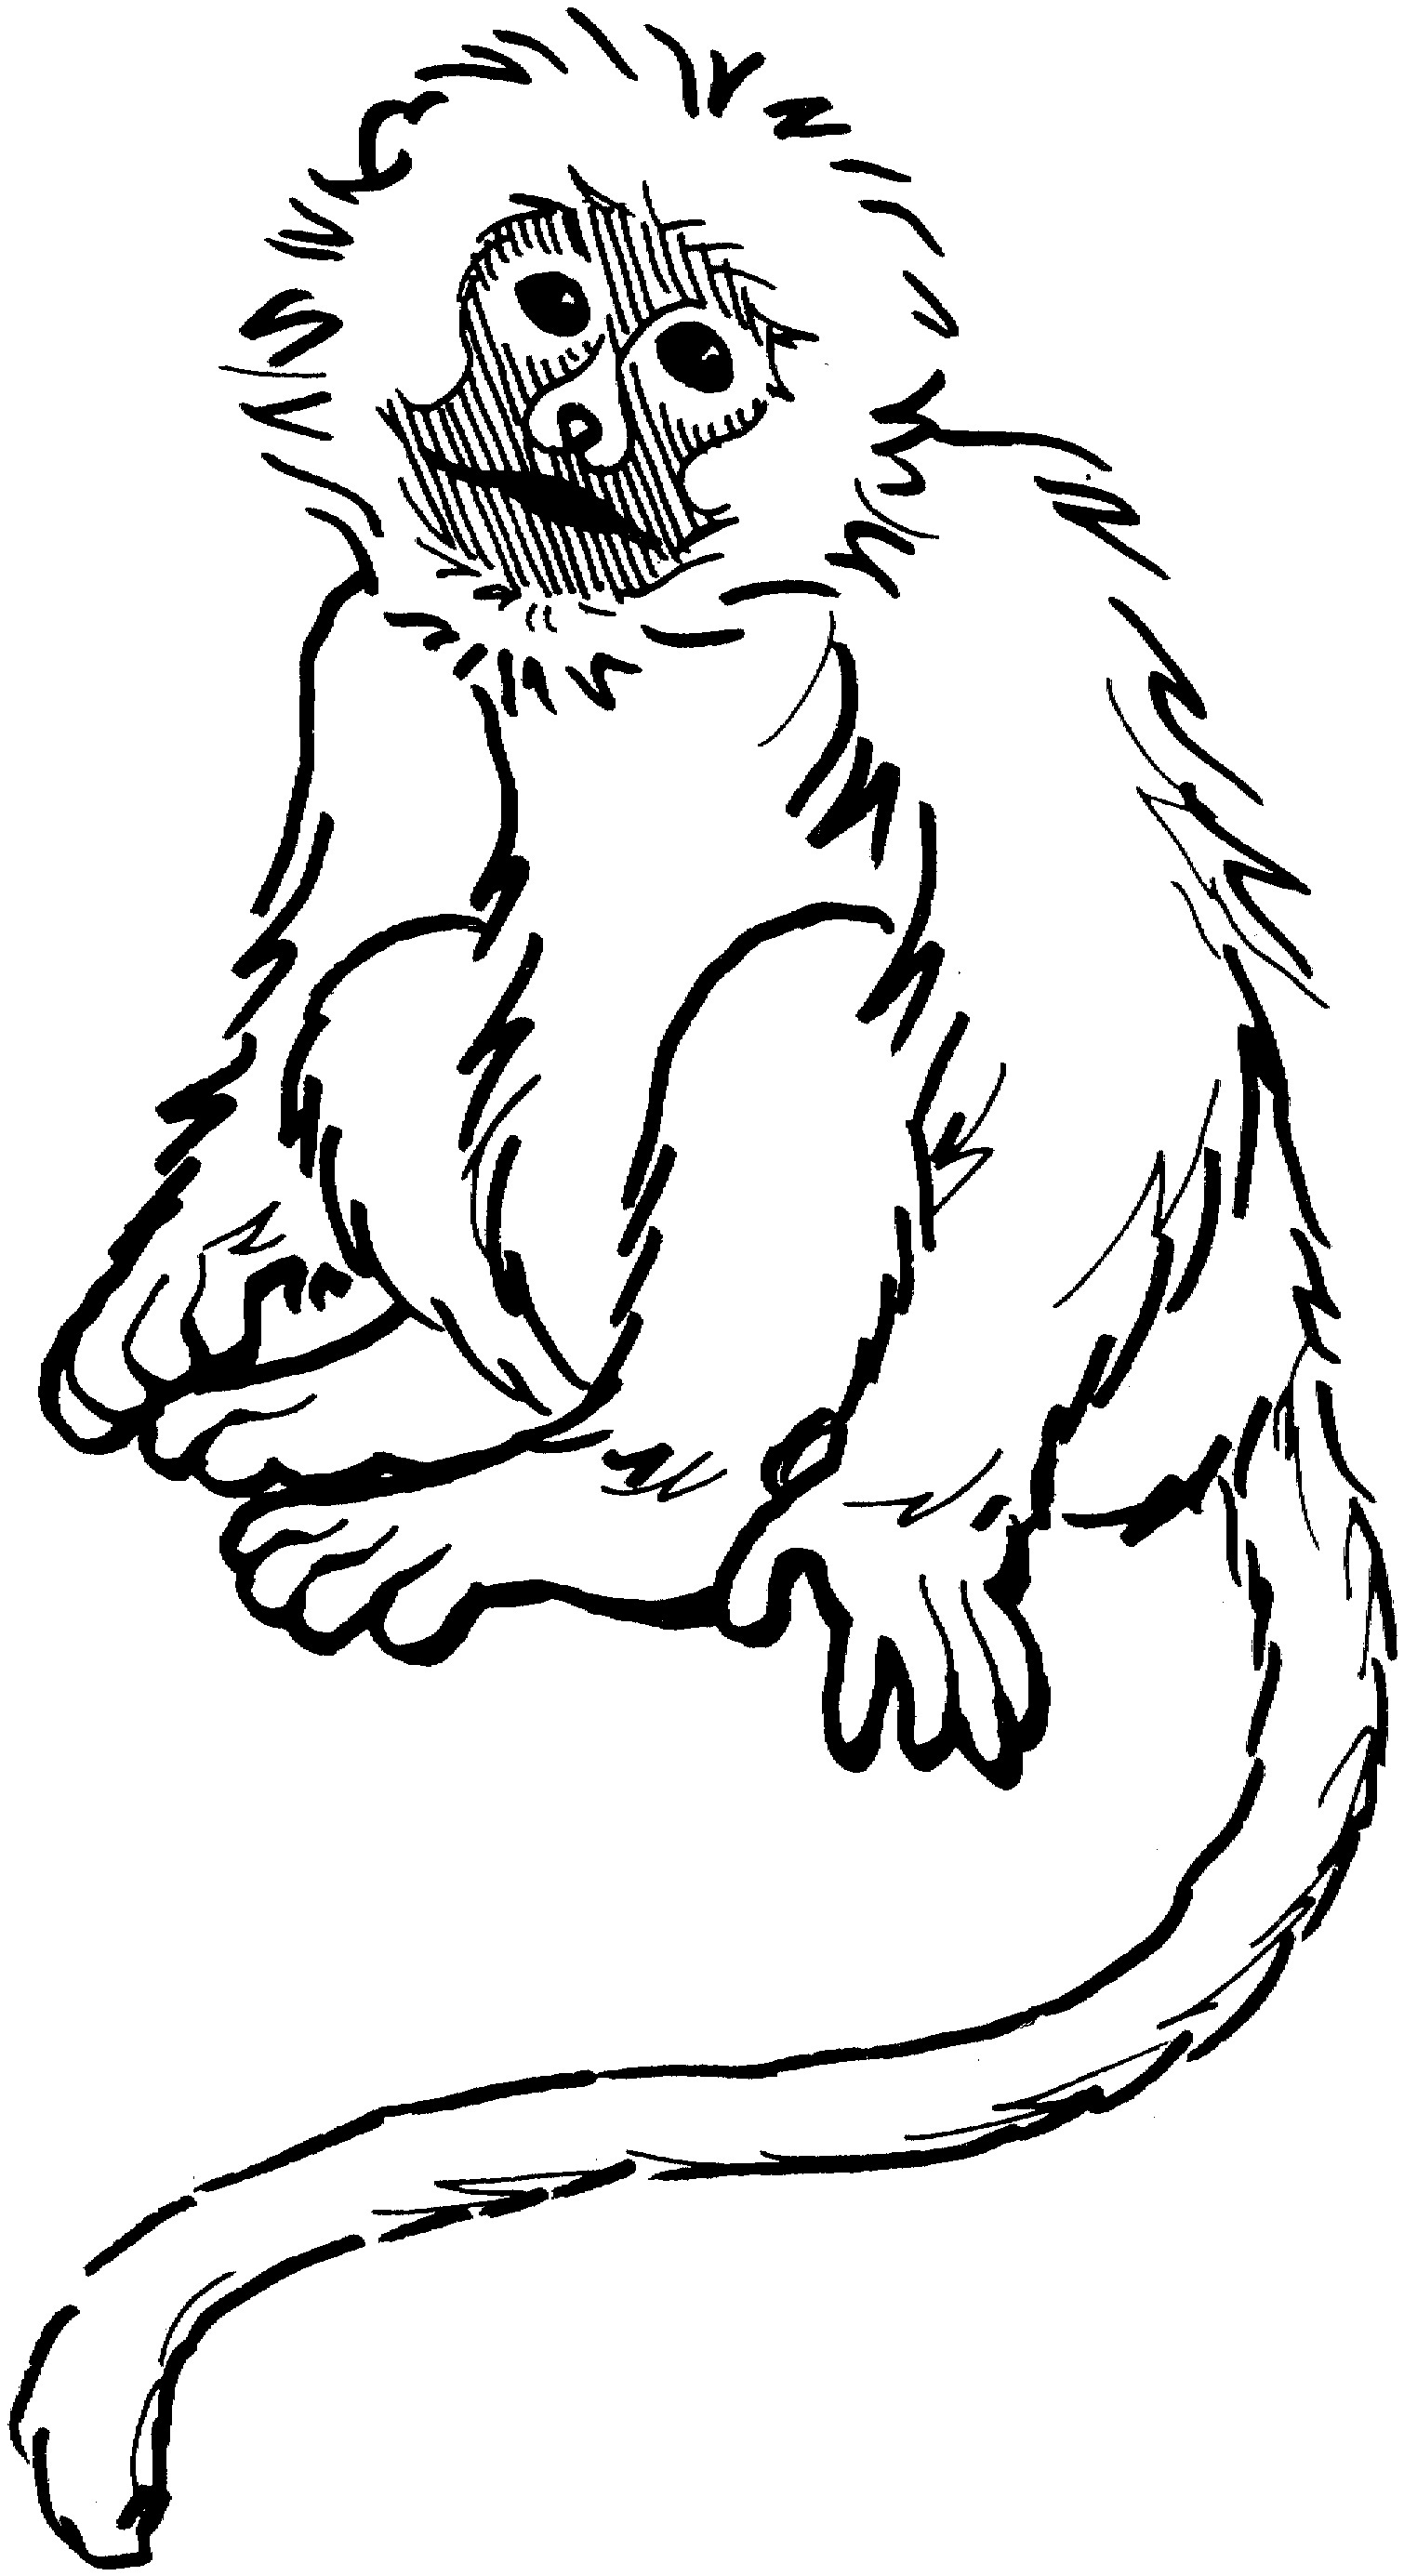 printable monkey coloring pages | coloring me - Coloring Pages Monkeys Trees